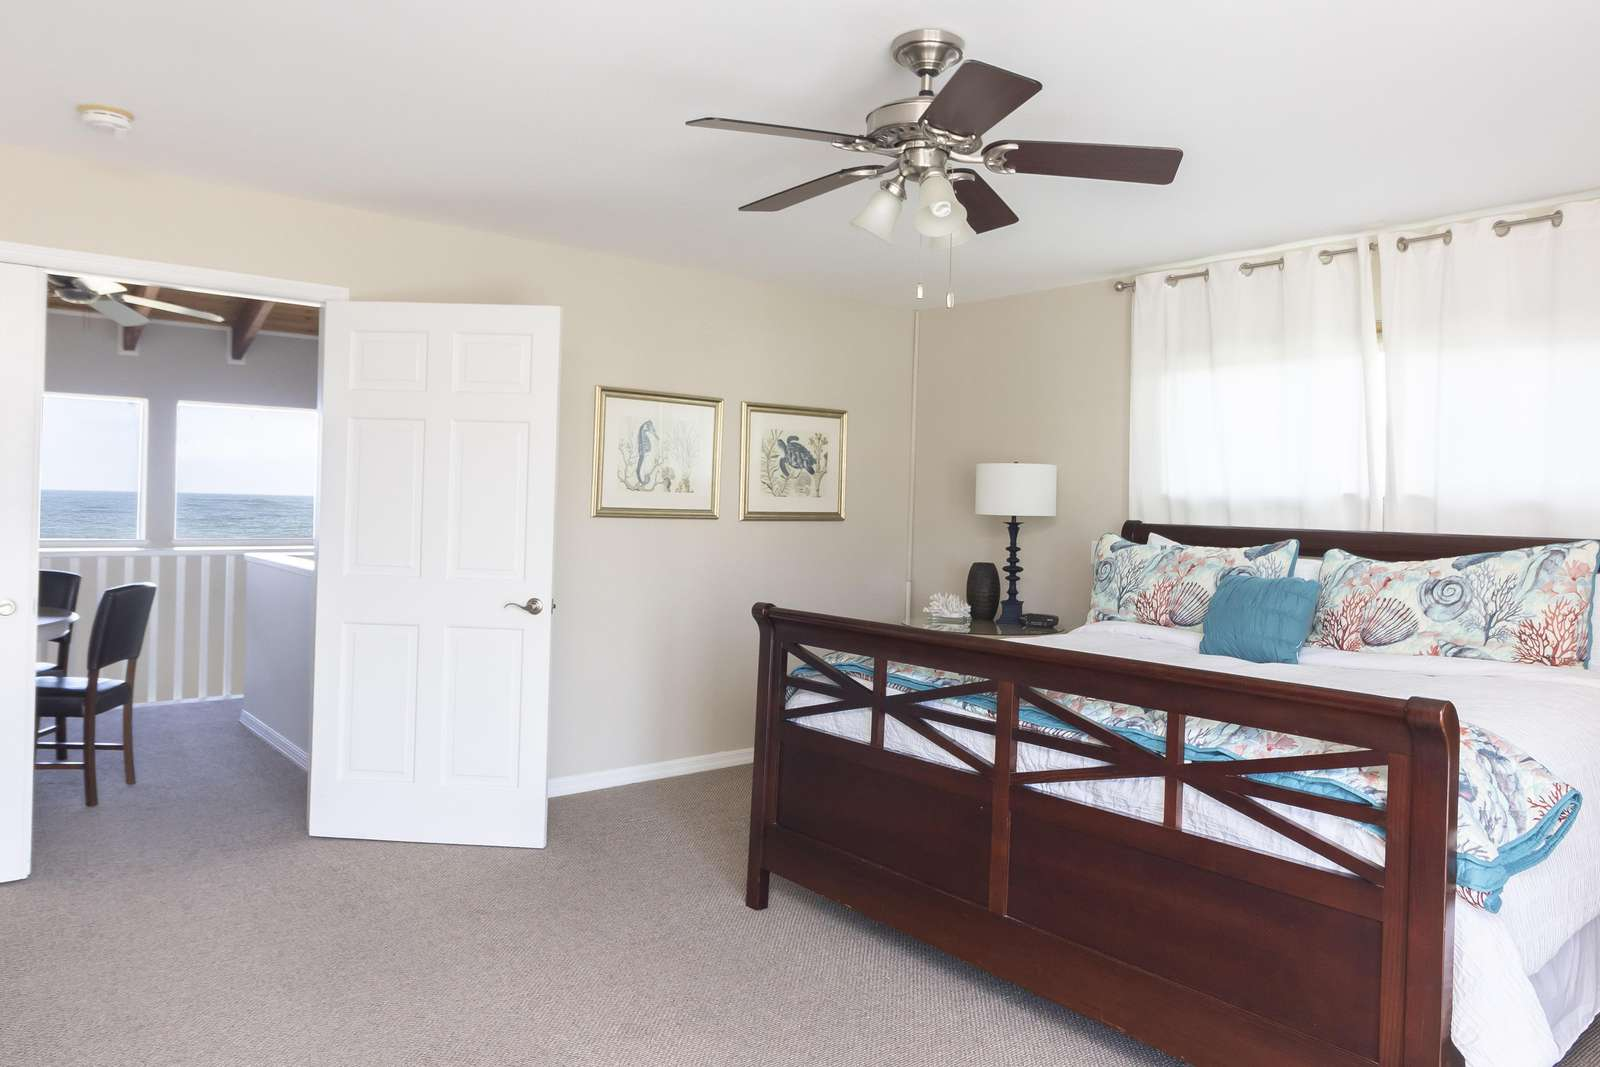 Ocean Sunrise - Master Bedroom